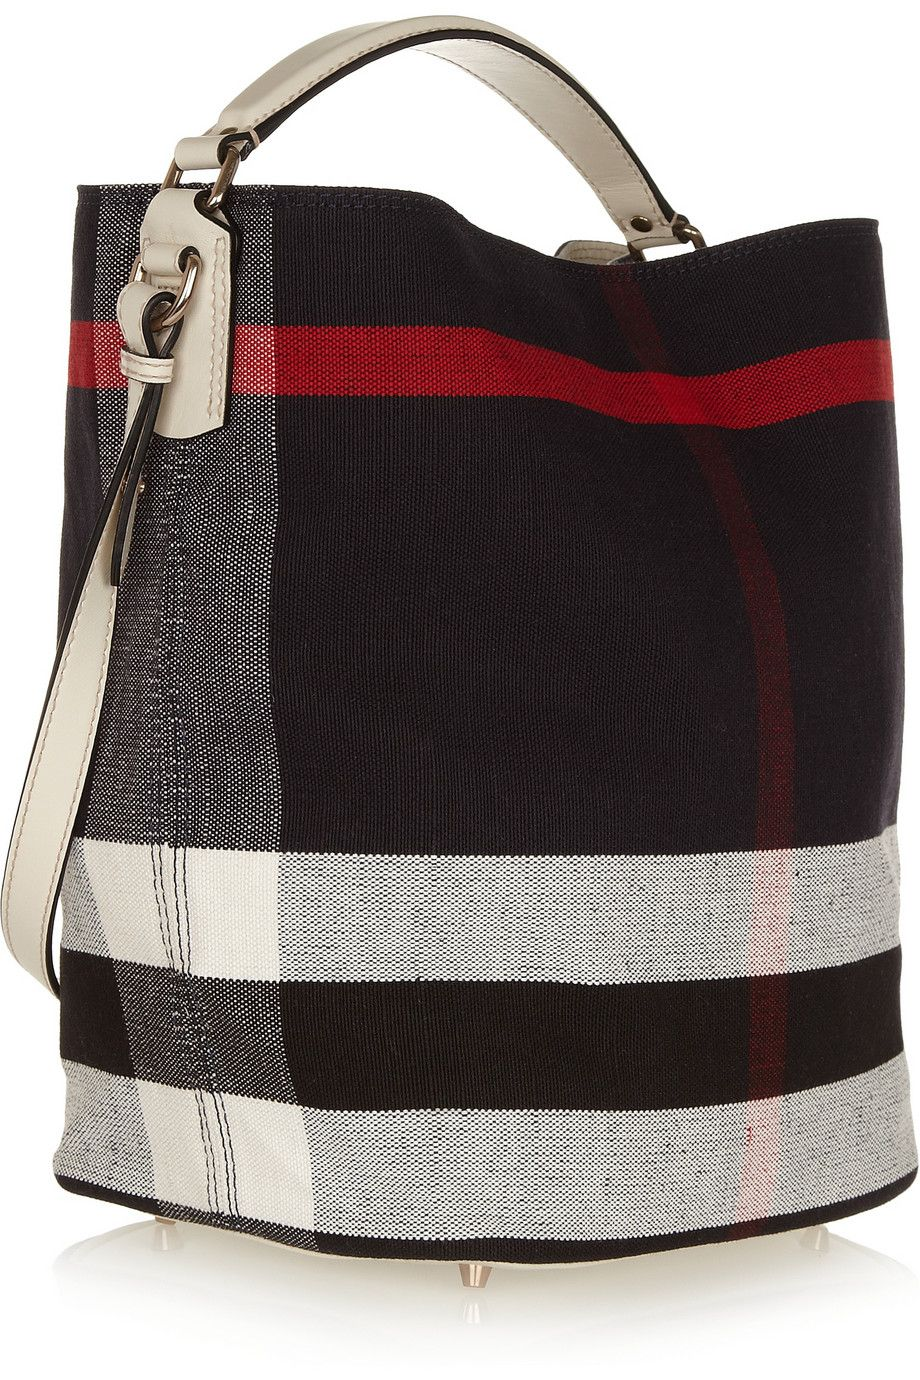 Burberry Signature Checked Canvas Hobo Bag with Top Handle and Shoulder  Strap 69447294838